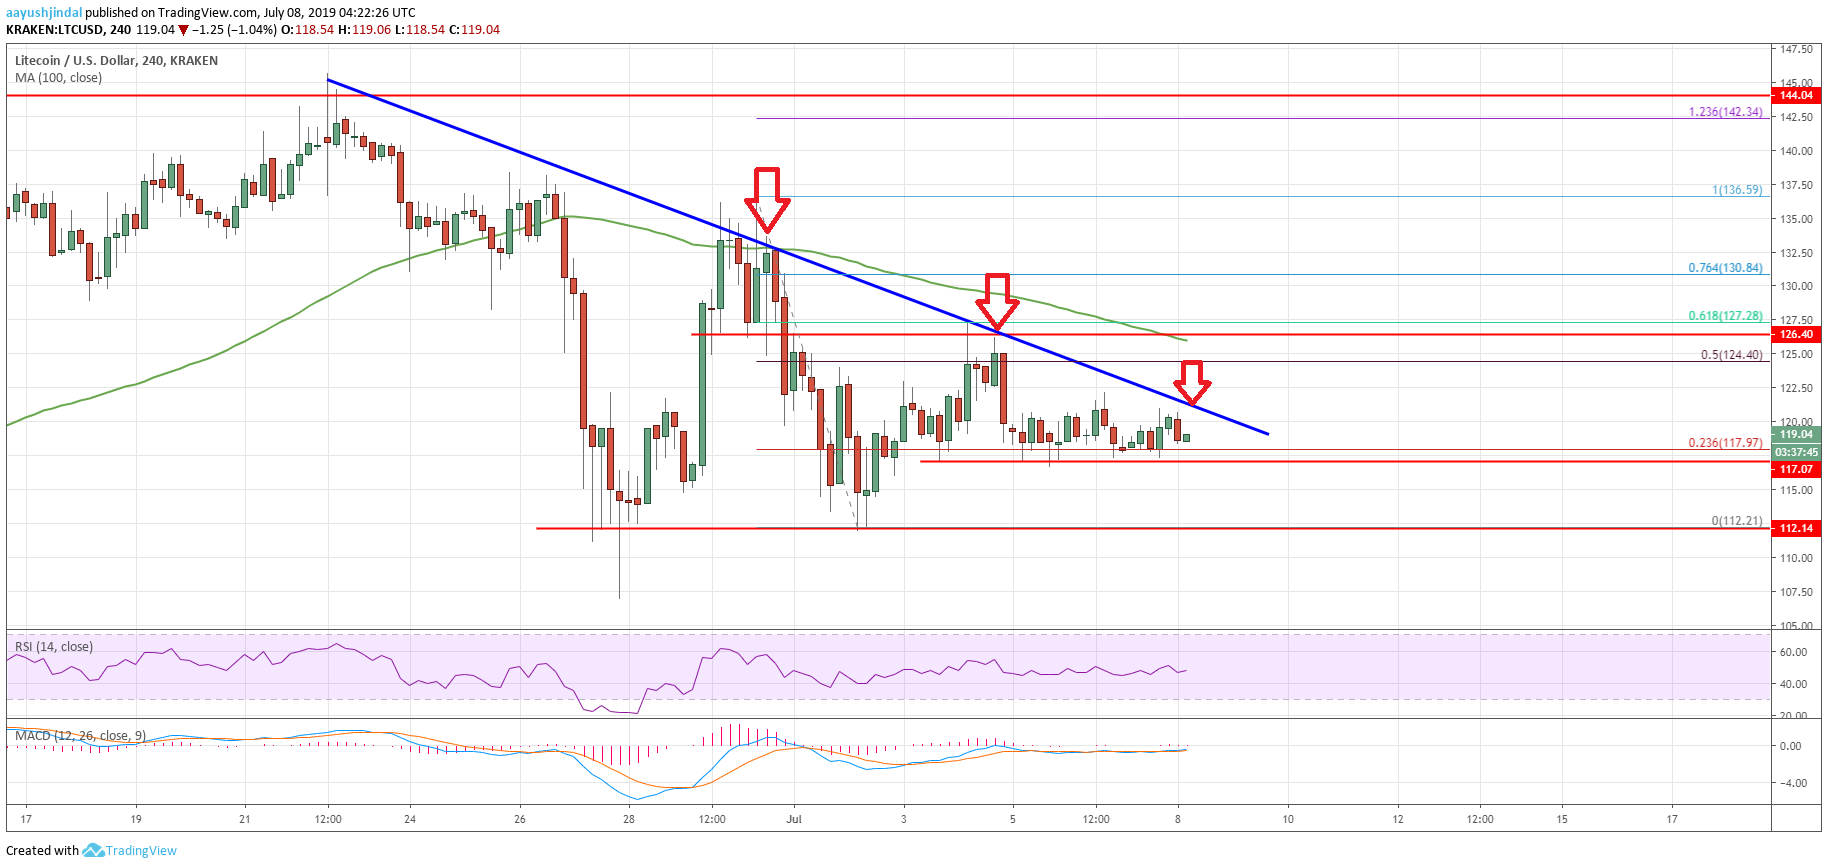 Litecoin Price Analysis (LTC)